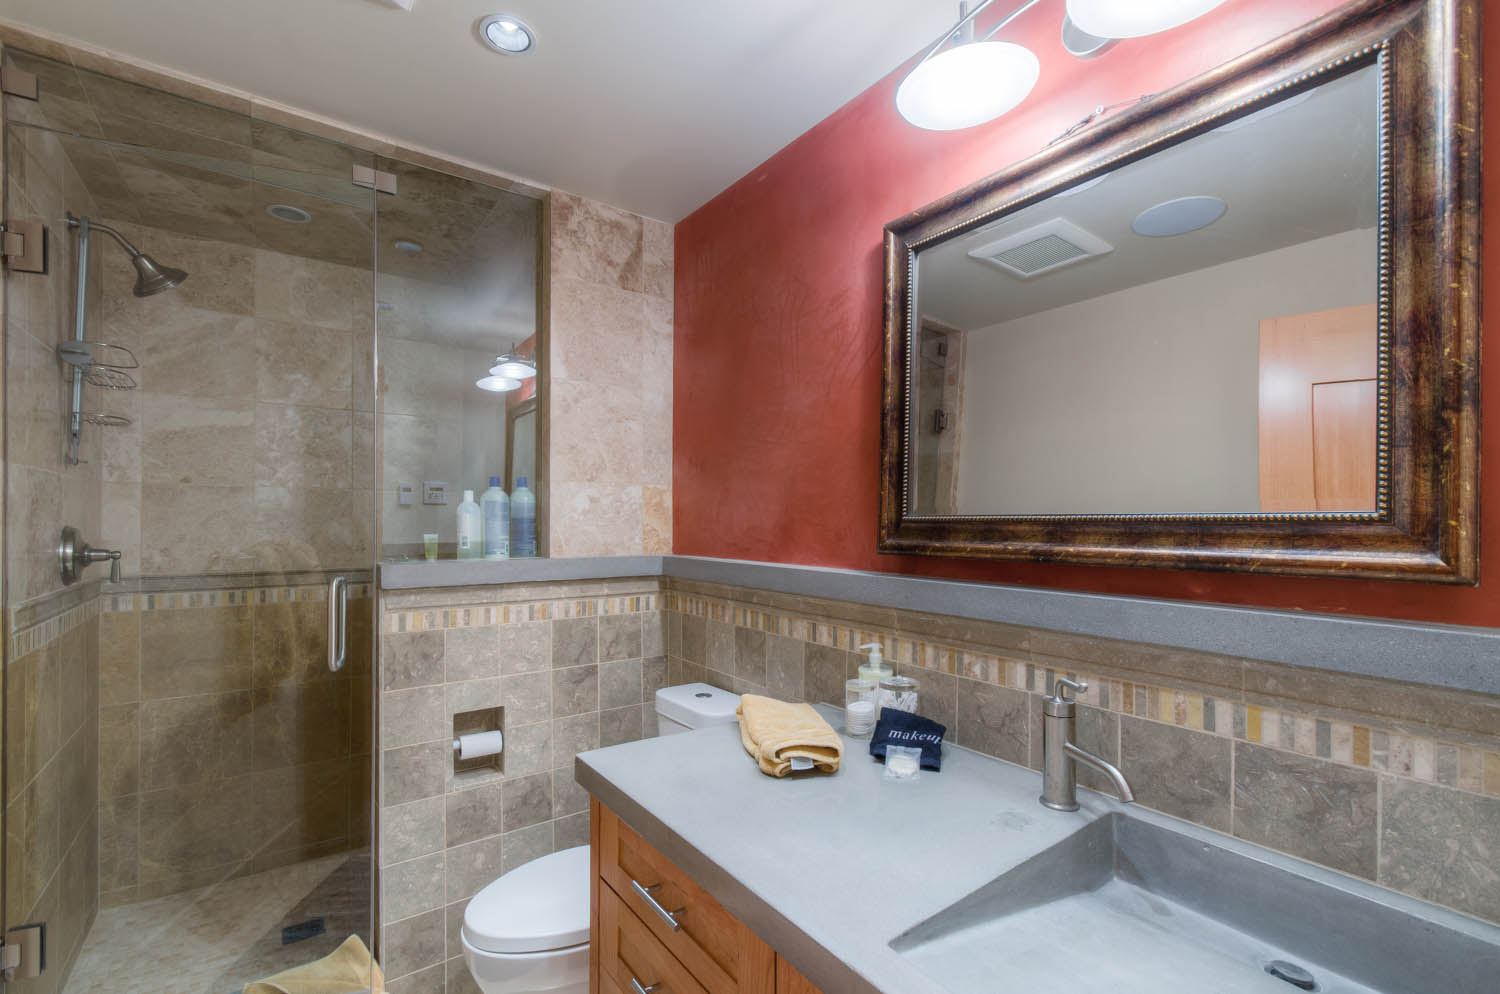 Bathroom with Walk-in Shower and Single Sink